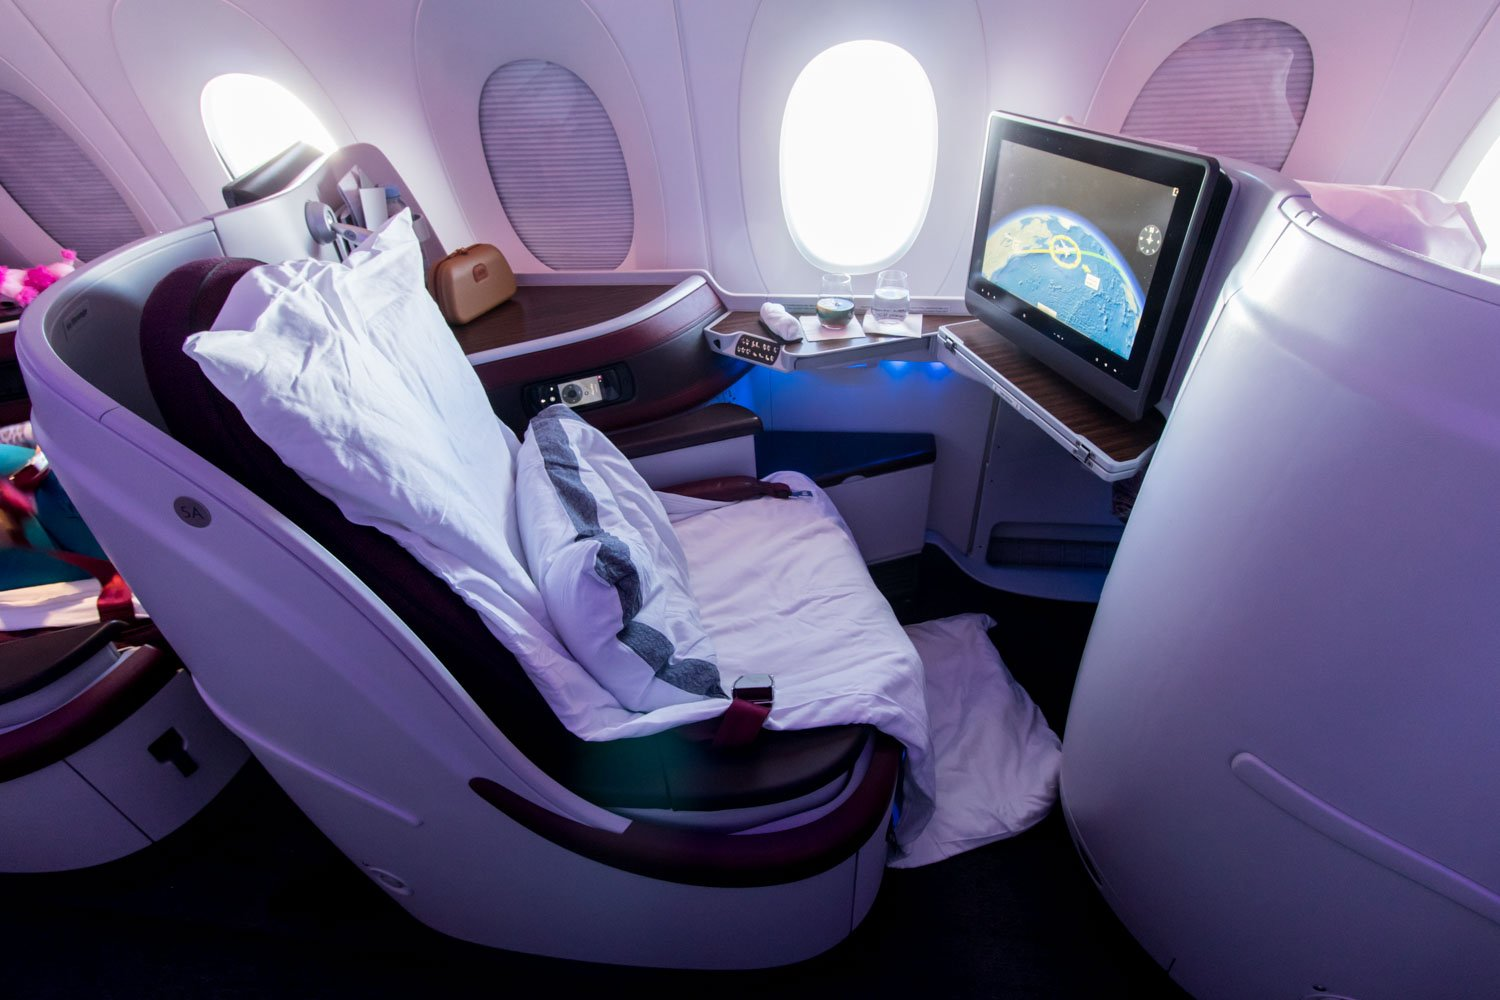 Qatar Airways Airbus A350-900 Business Class Seat